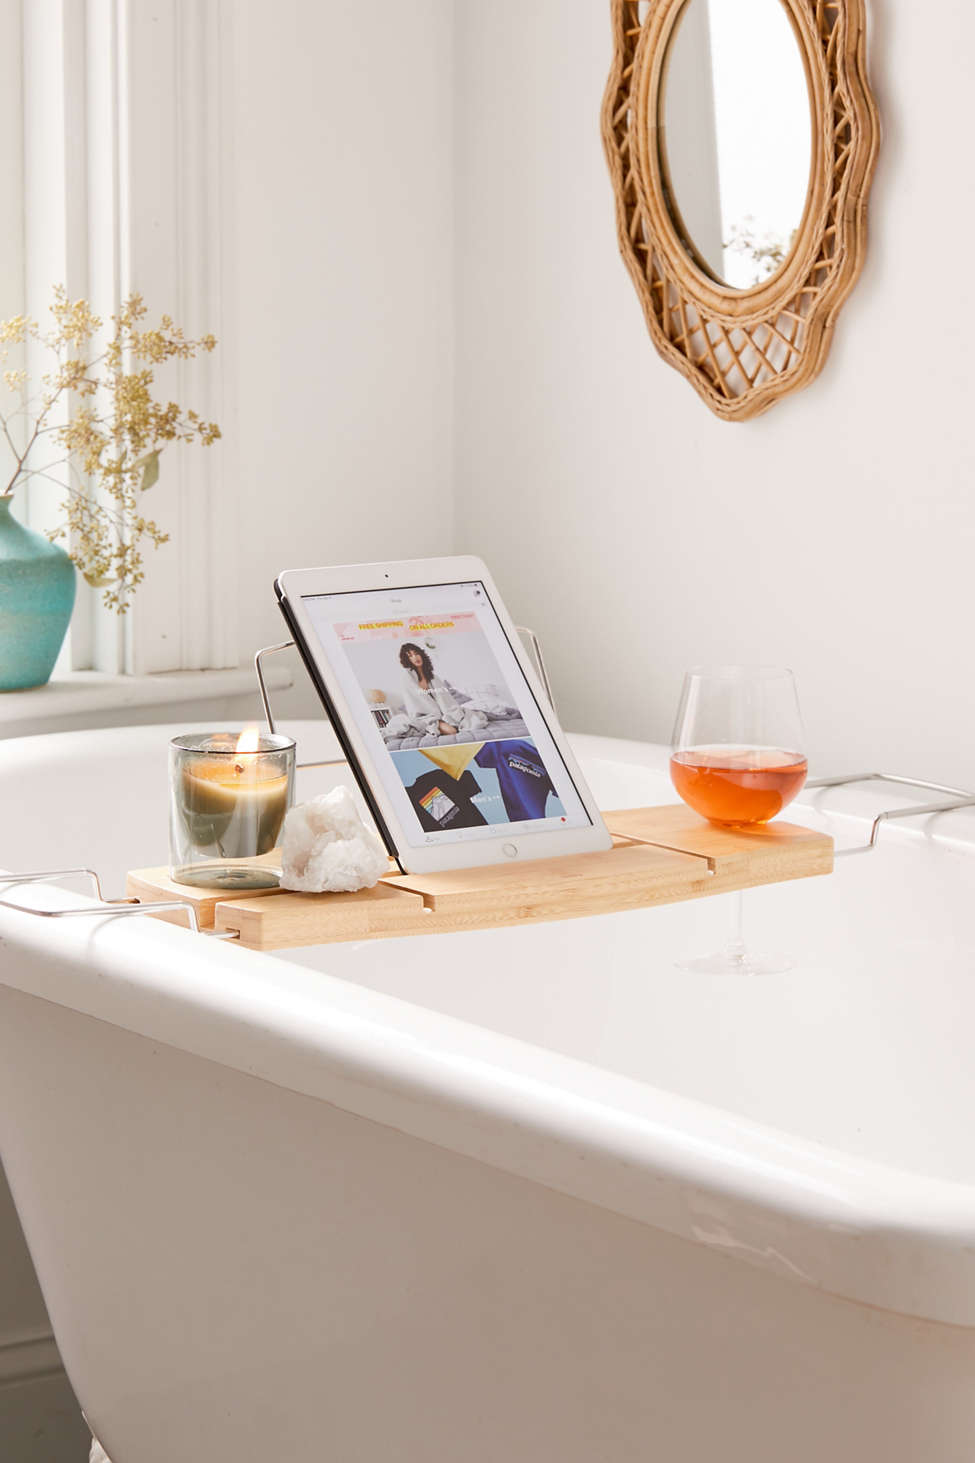 Slide View: 1: Me Time Bamboo Bath Tray Caddy